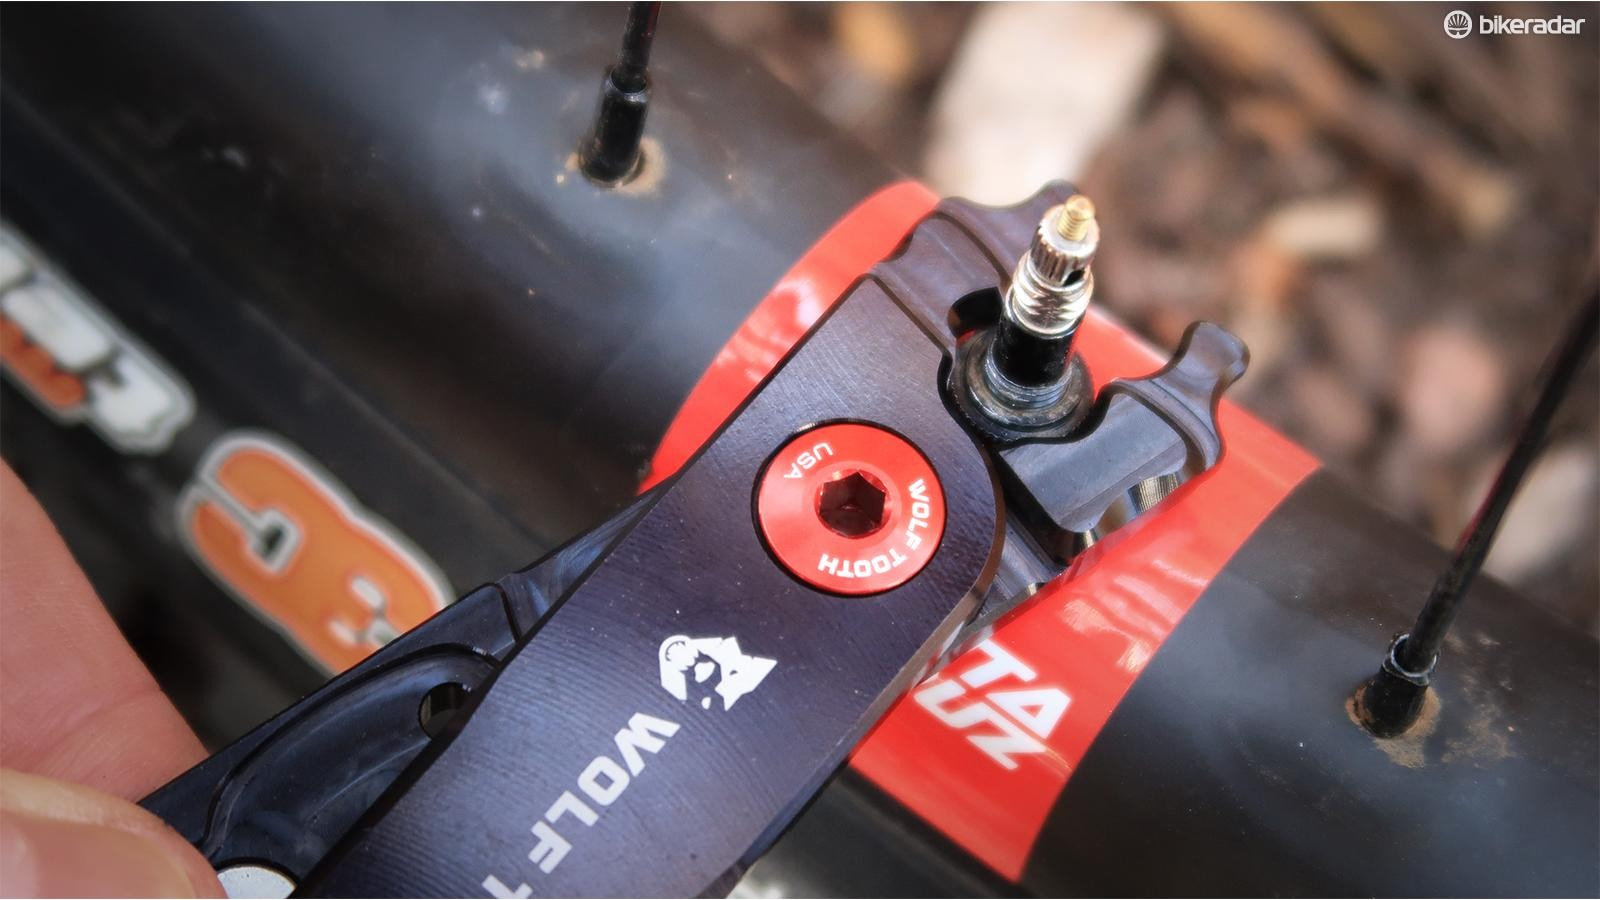 Loose valve nuts can be annoying on the road and a source of air loss for tubeless riders